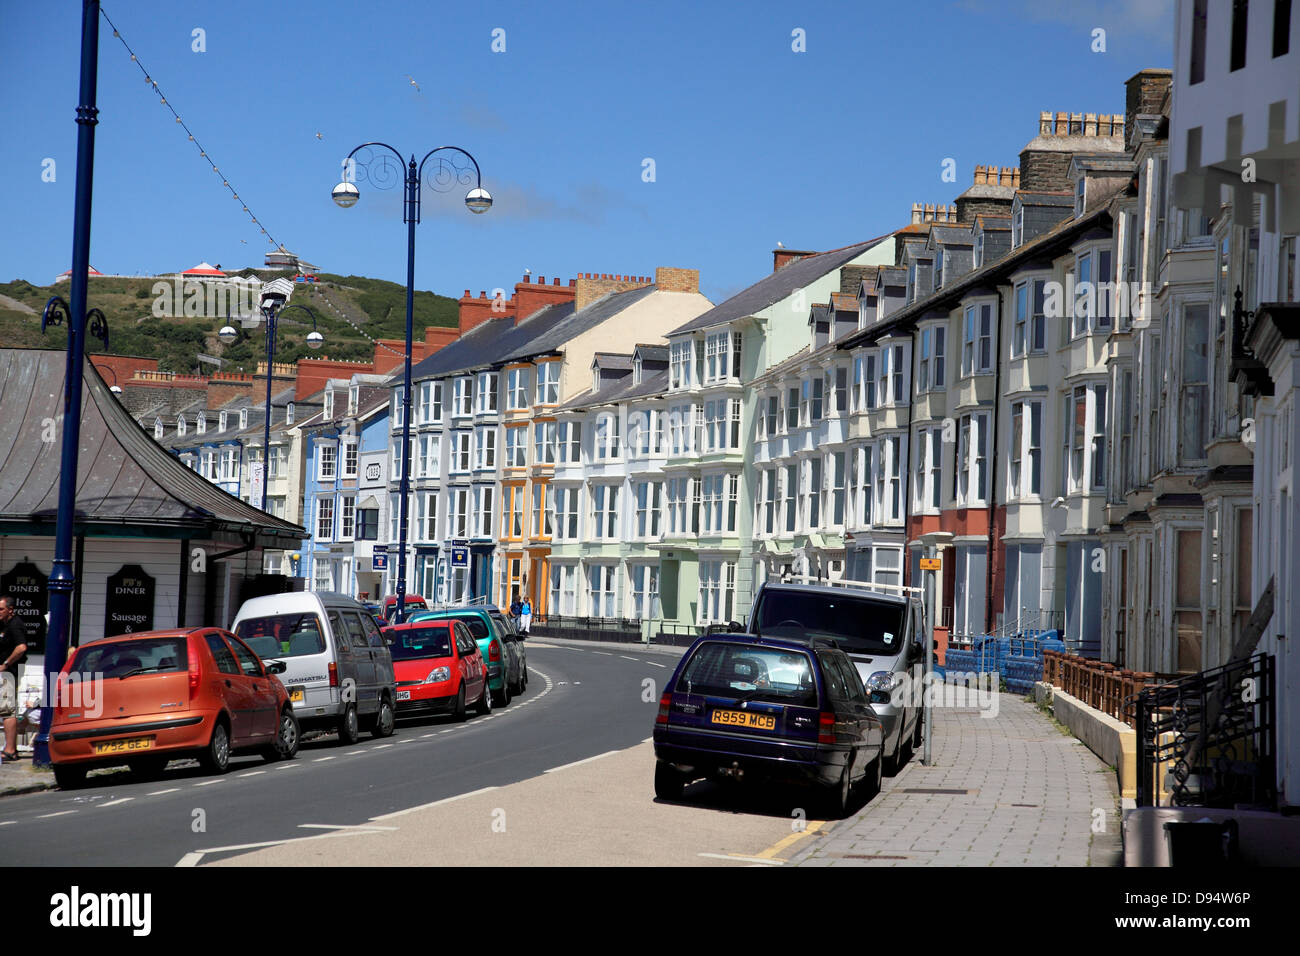 Guest Houses and hotels on Marine Terrace next to the seafront promenade at Aberystwyth on the west coast of Wales - Stock Image